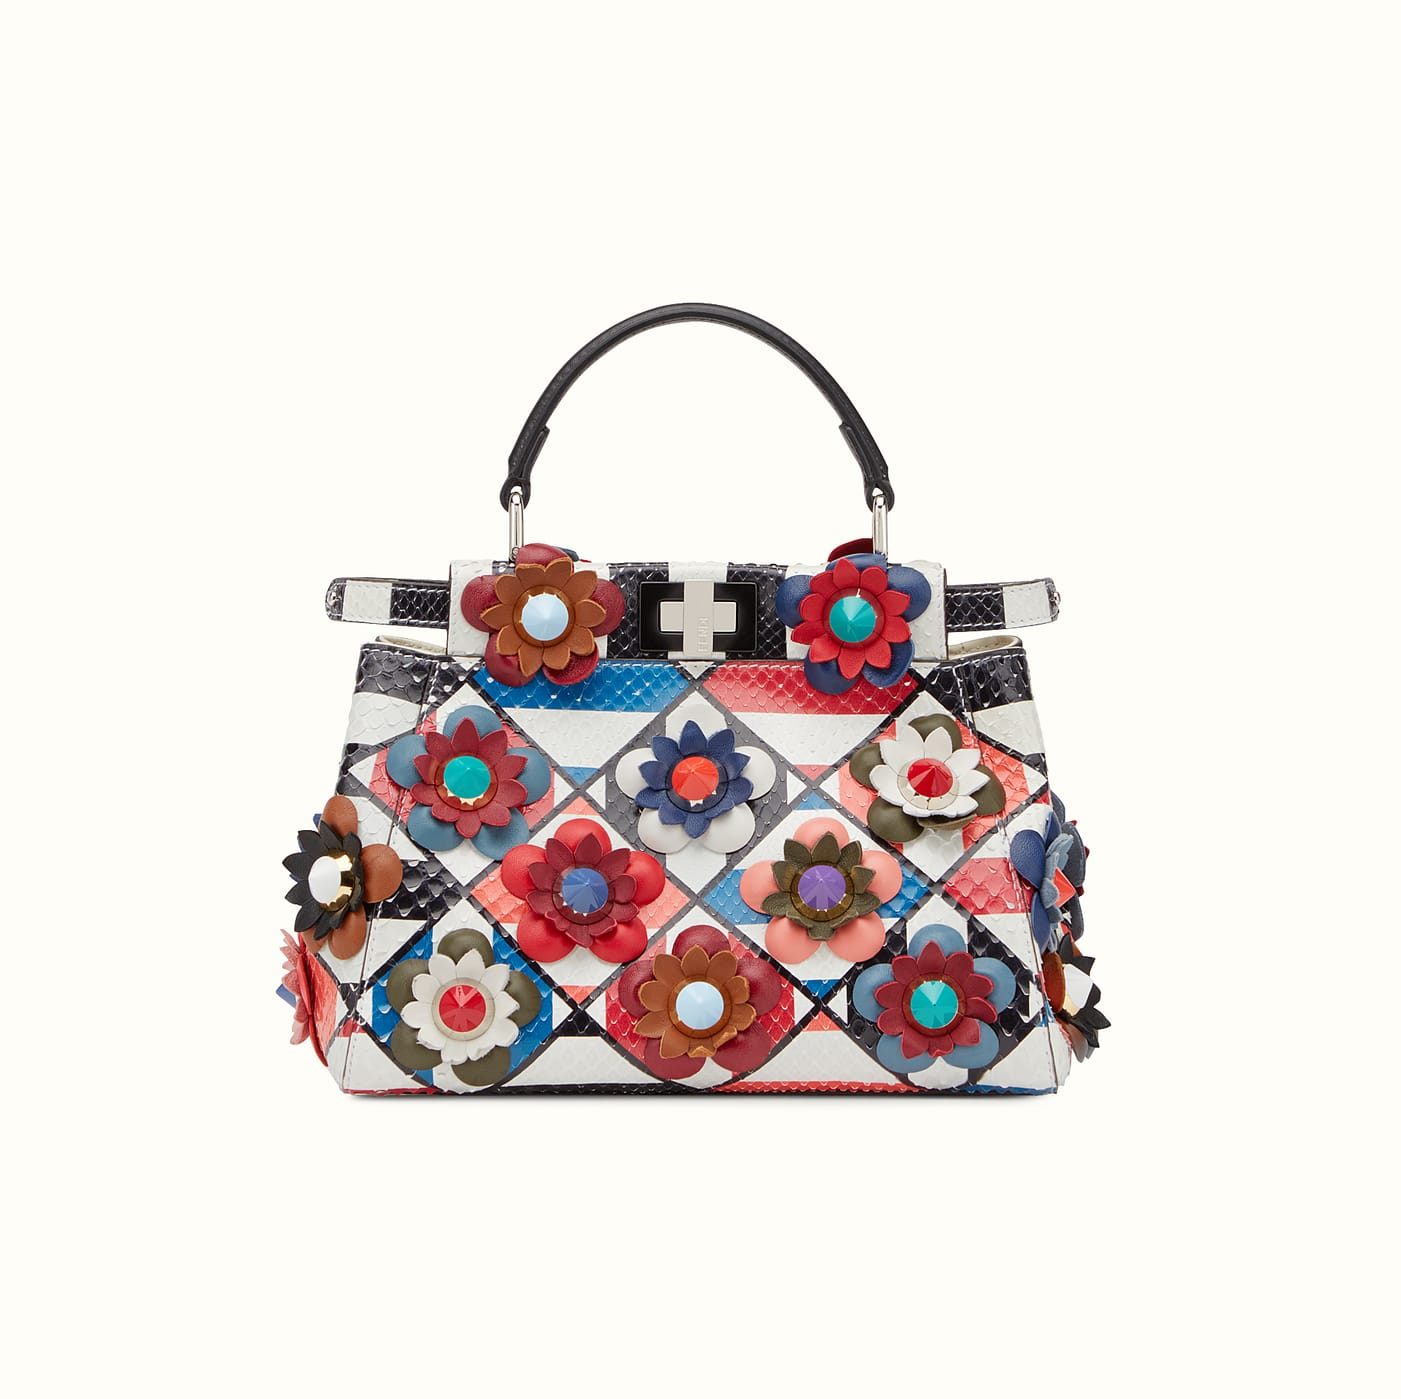 Fendi Flowerland Collection From Spring Summer 2016  70b2b6a5b573e